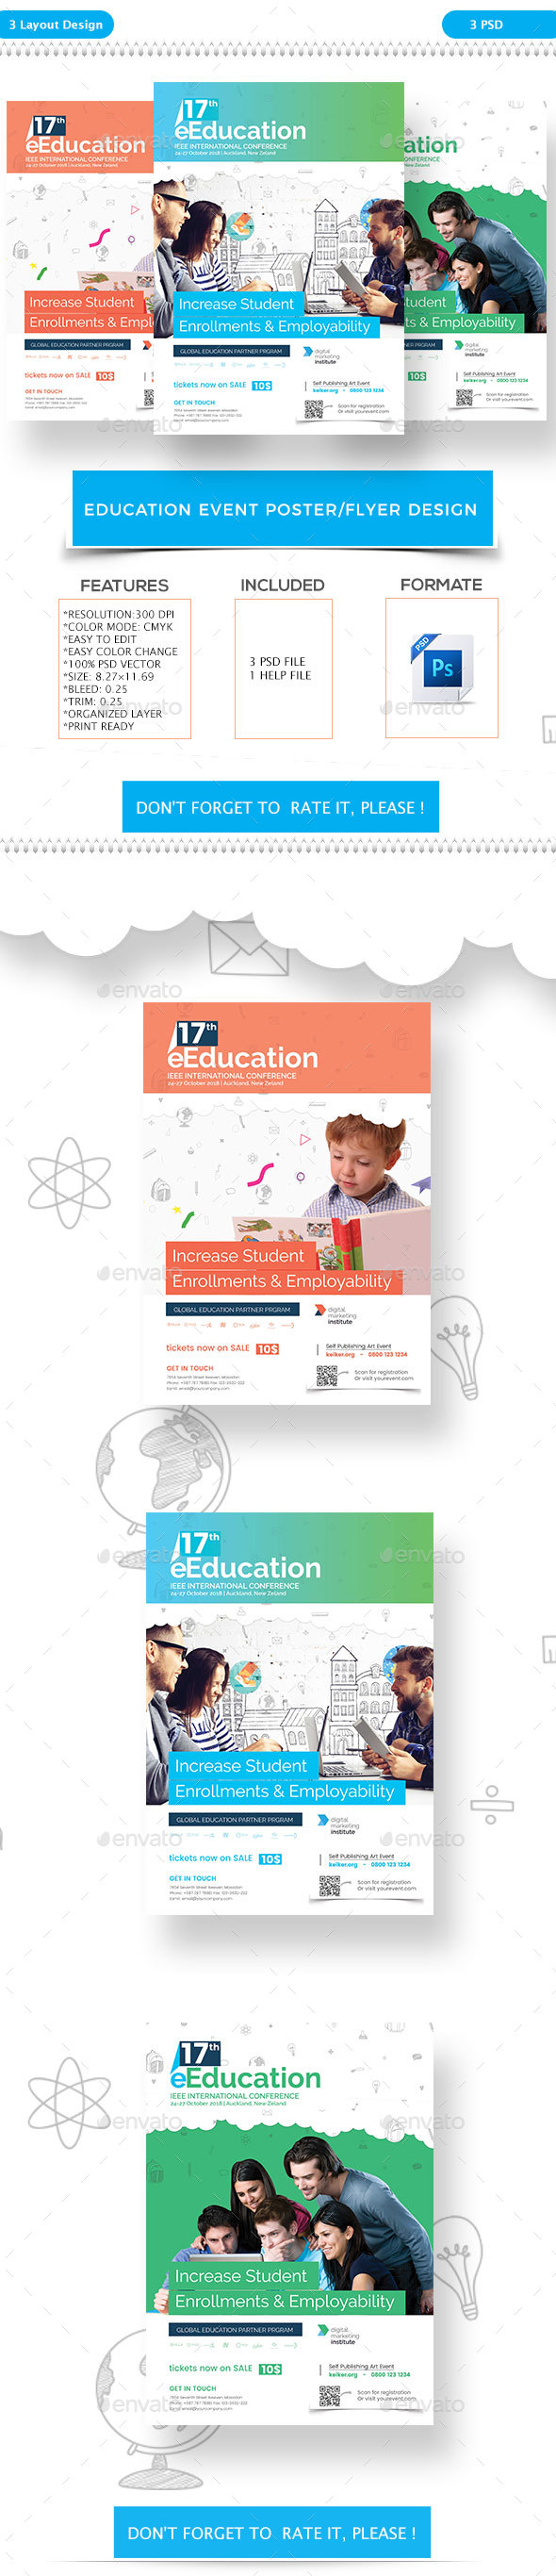 Education Event Poster/Flyer Design - Corporate Flyers